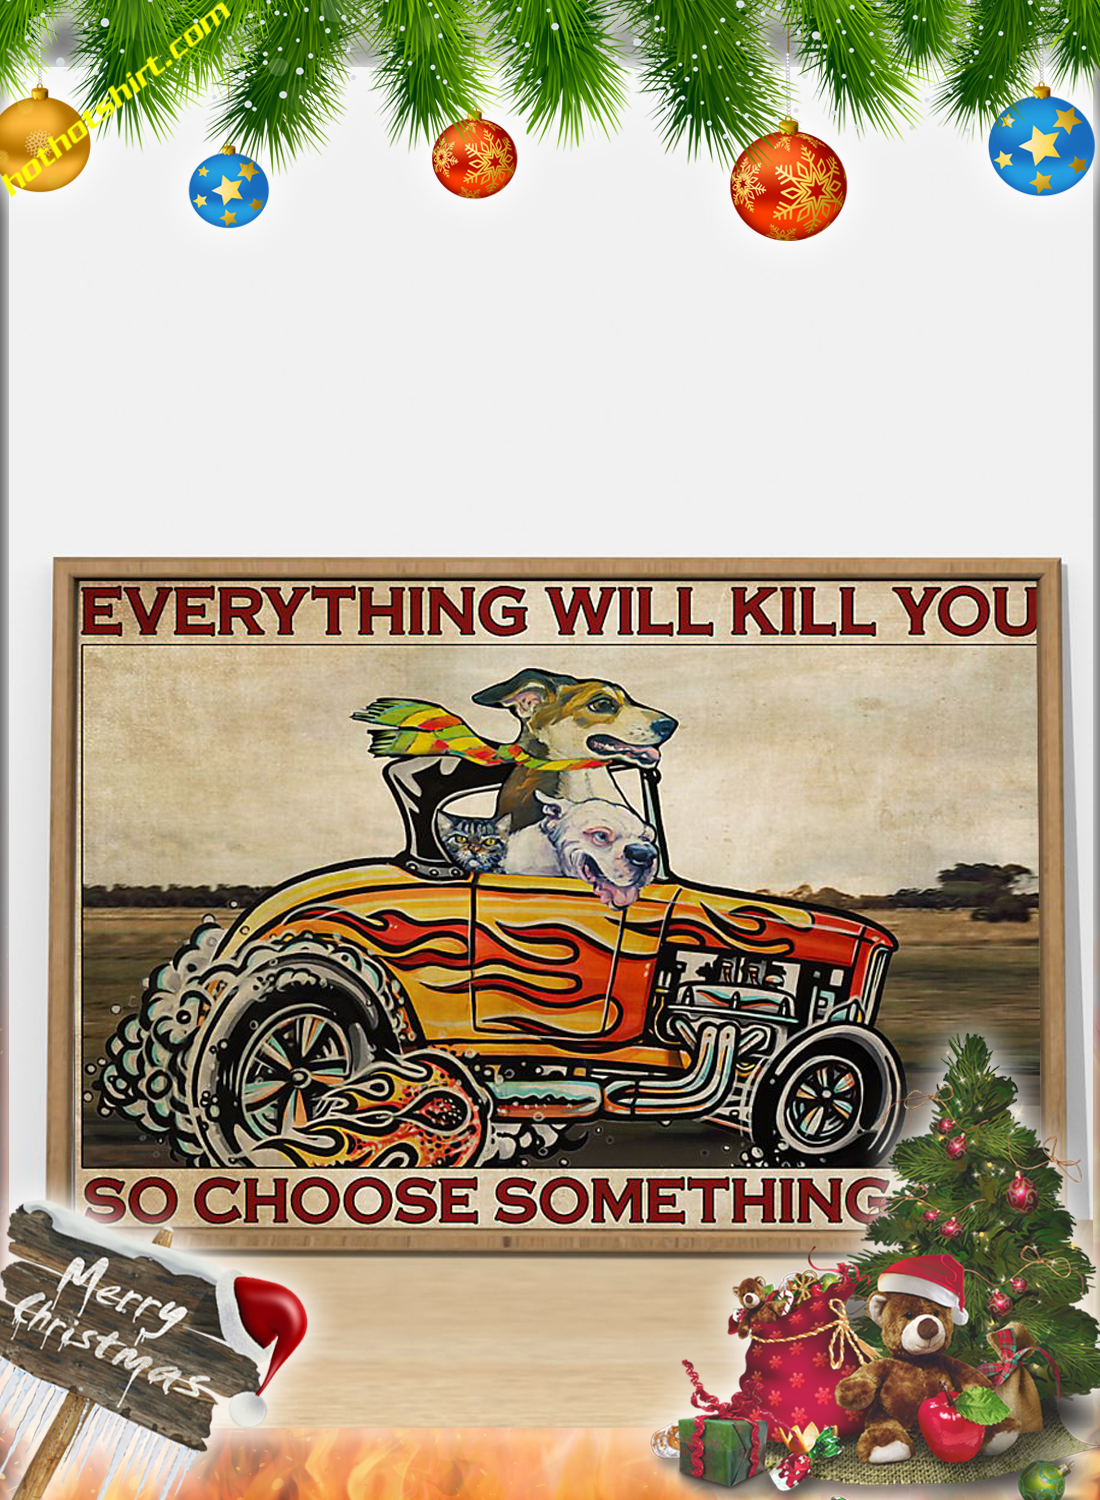 Dog Hot Rod Everything will kill you so choose something fun poster 2